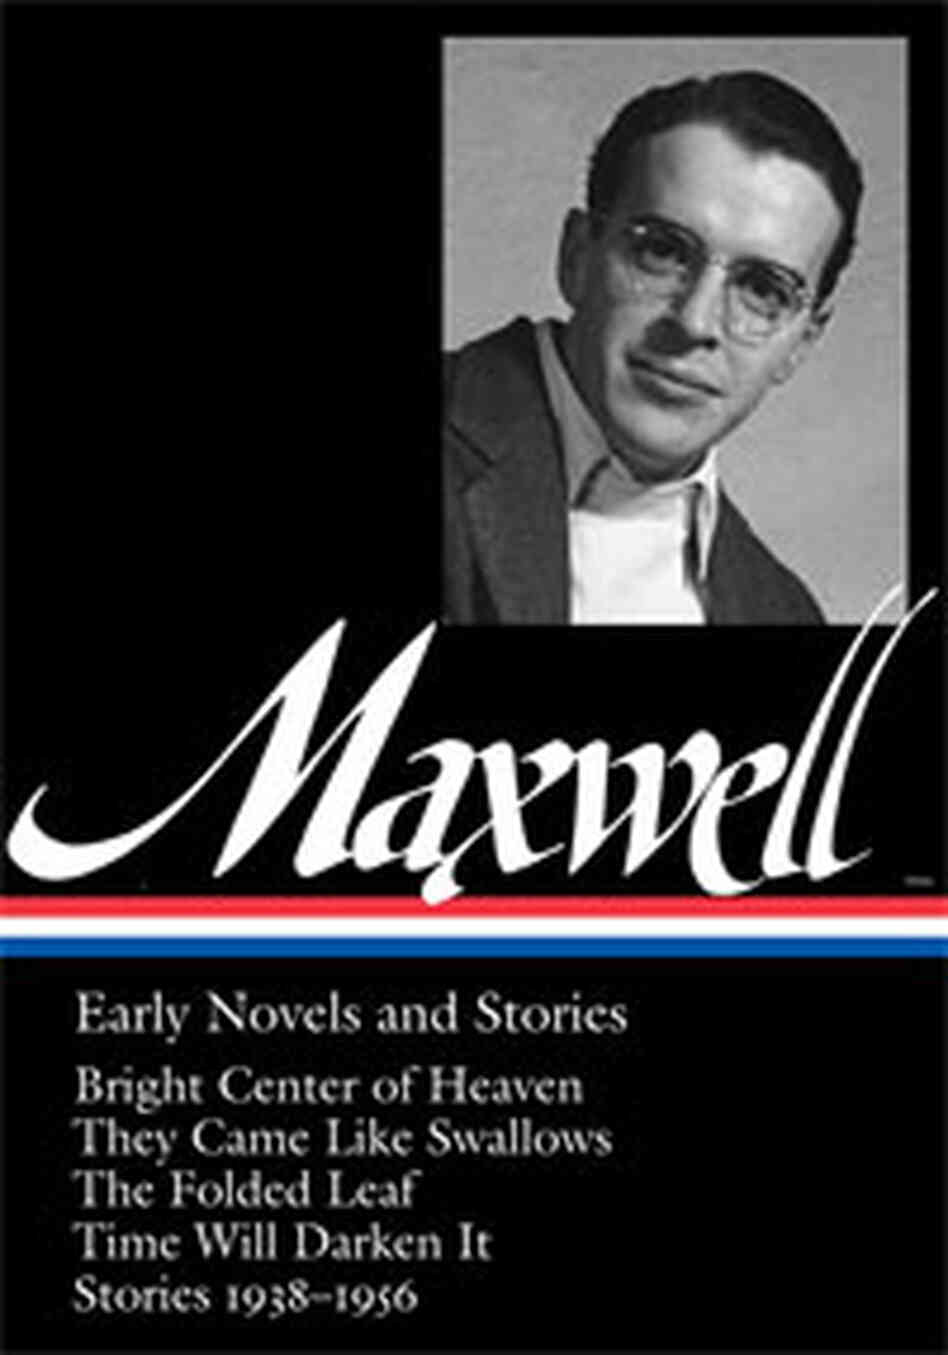 William Maxwell's Early Novels and Stories